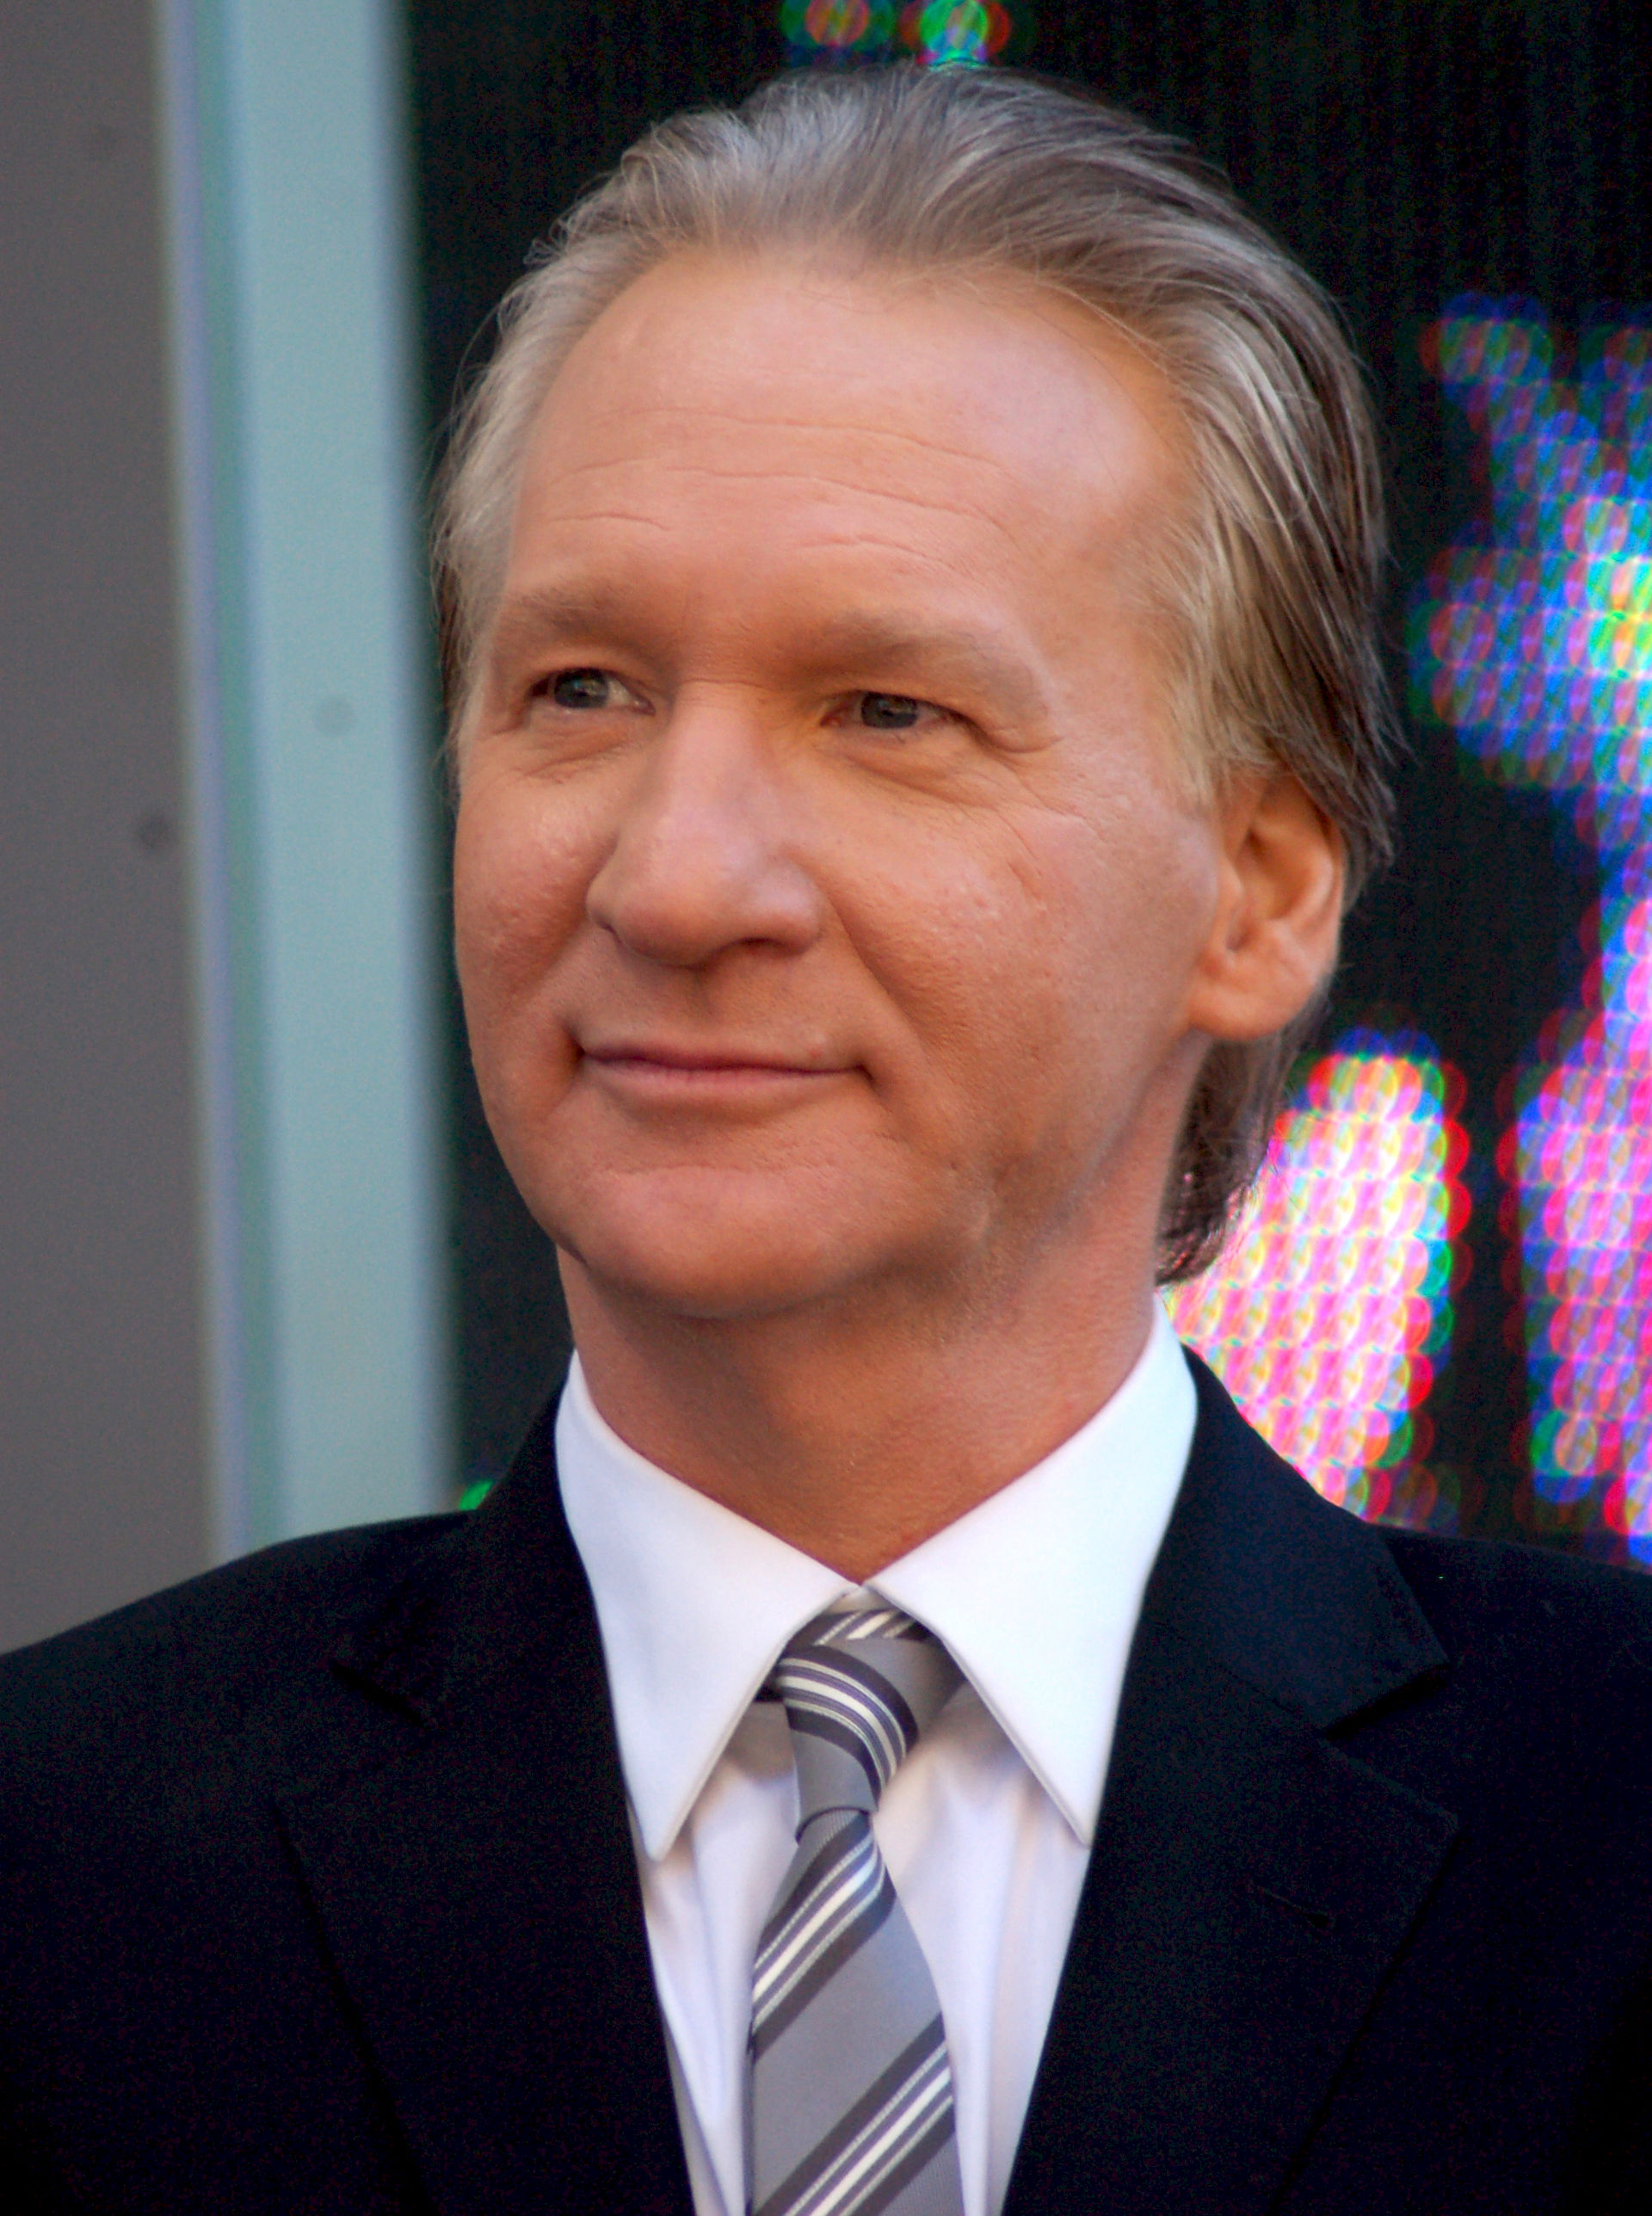 Photo of Bill Maher: American stand-up comedian